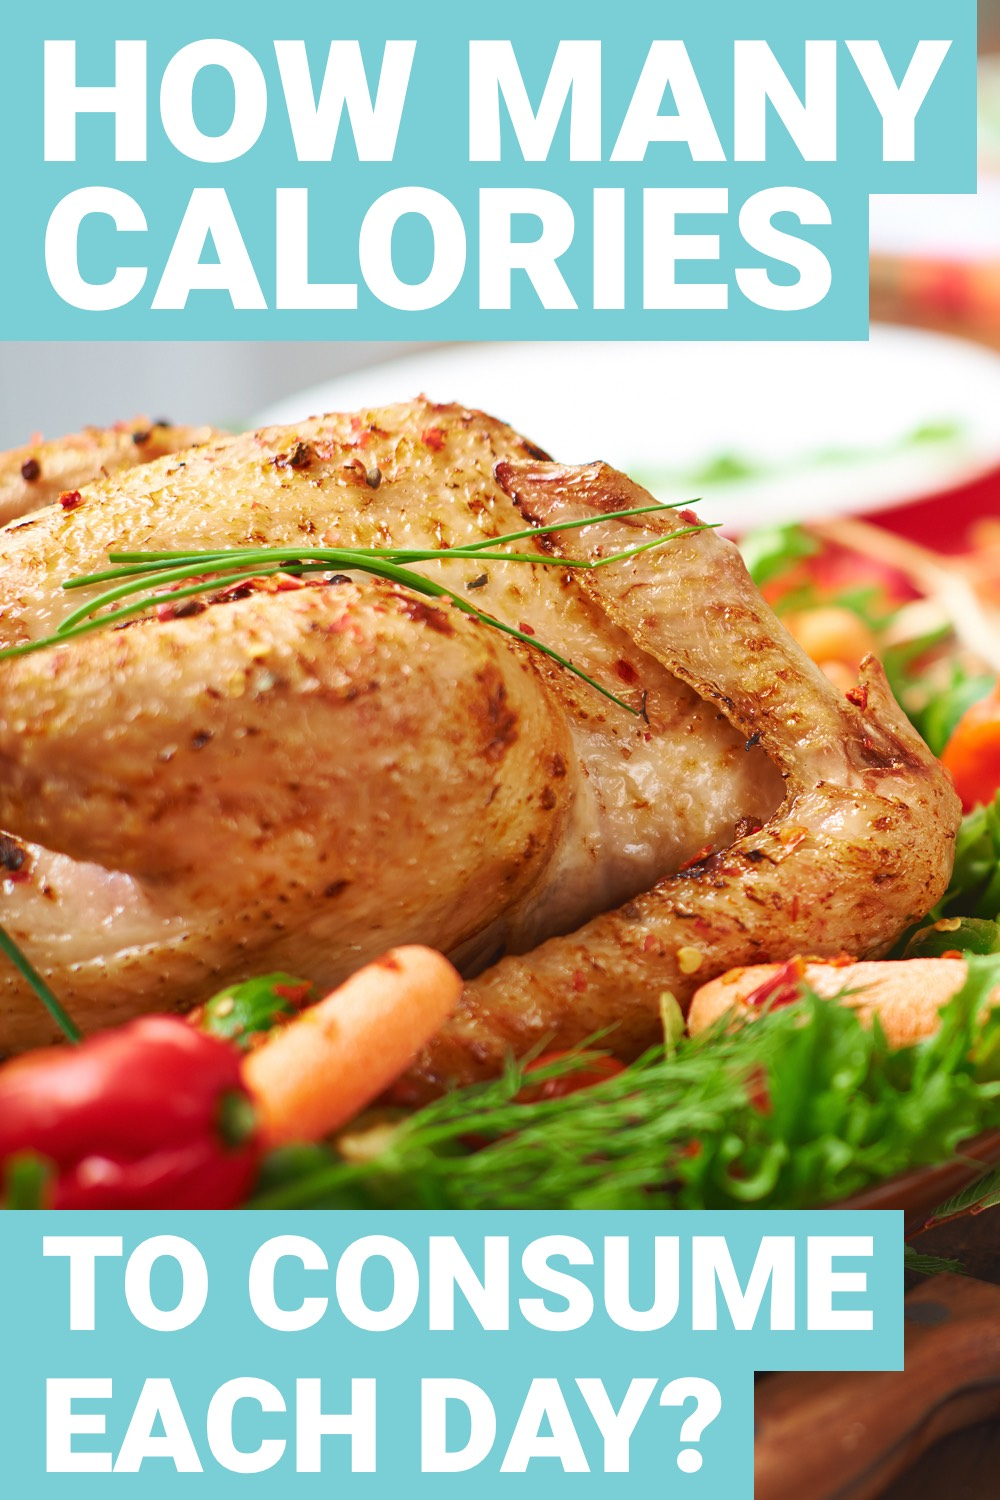 To lose weight, you need to watch your calories. How many calories per day should you eat to lose weight? Find out here.